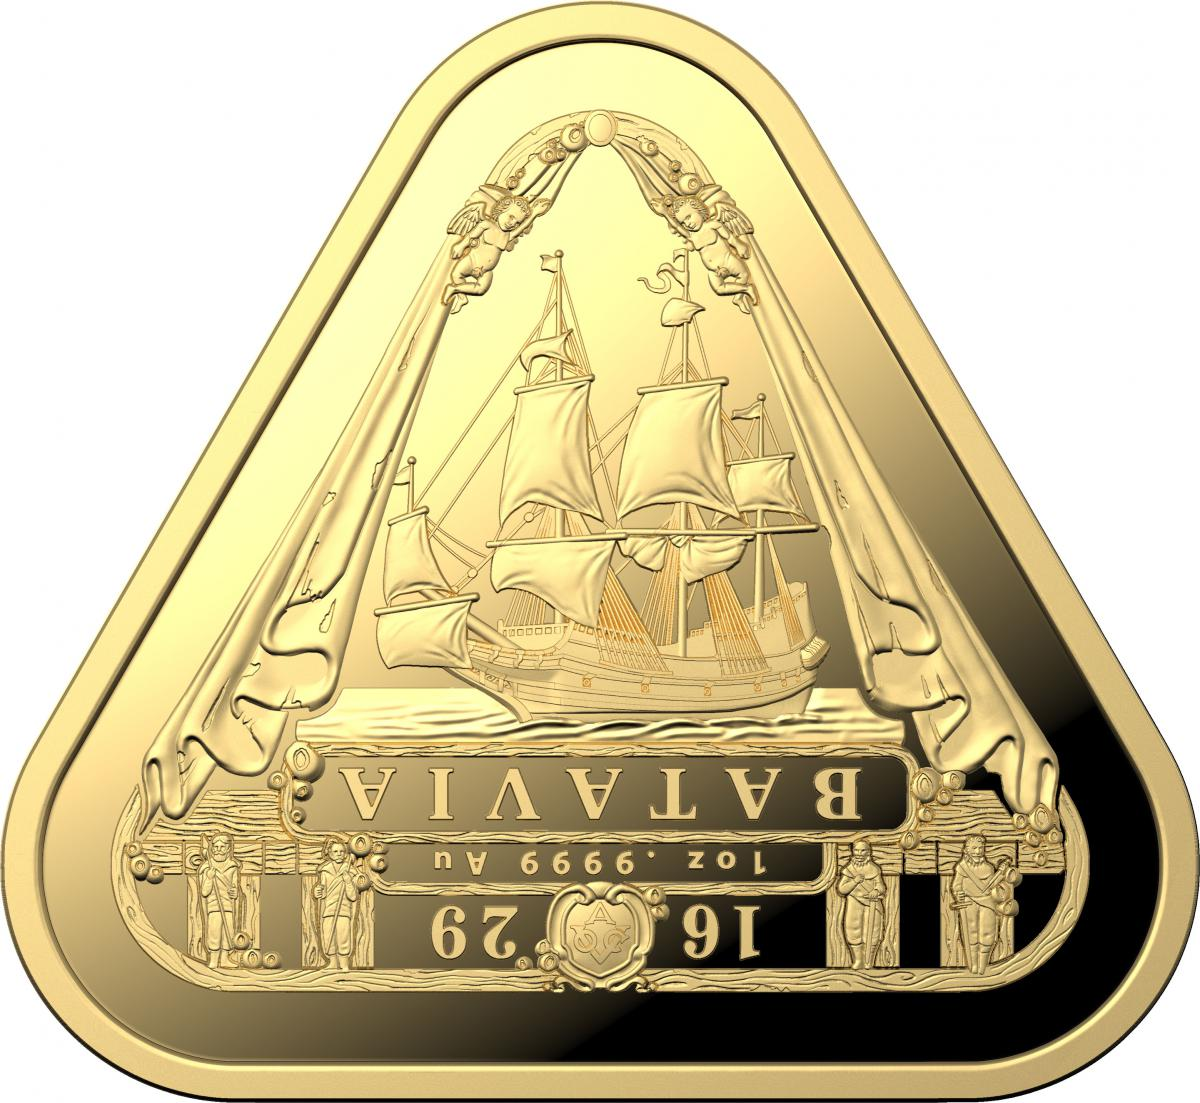 2019 1 oz Australia Triangular - Batavia .999 Gold Coin BU